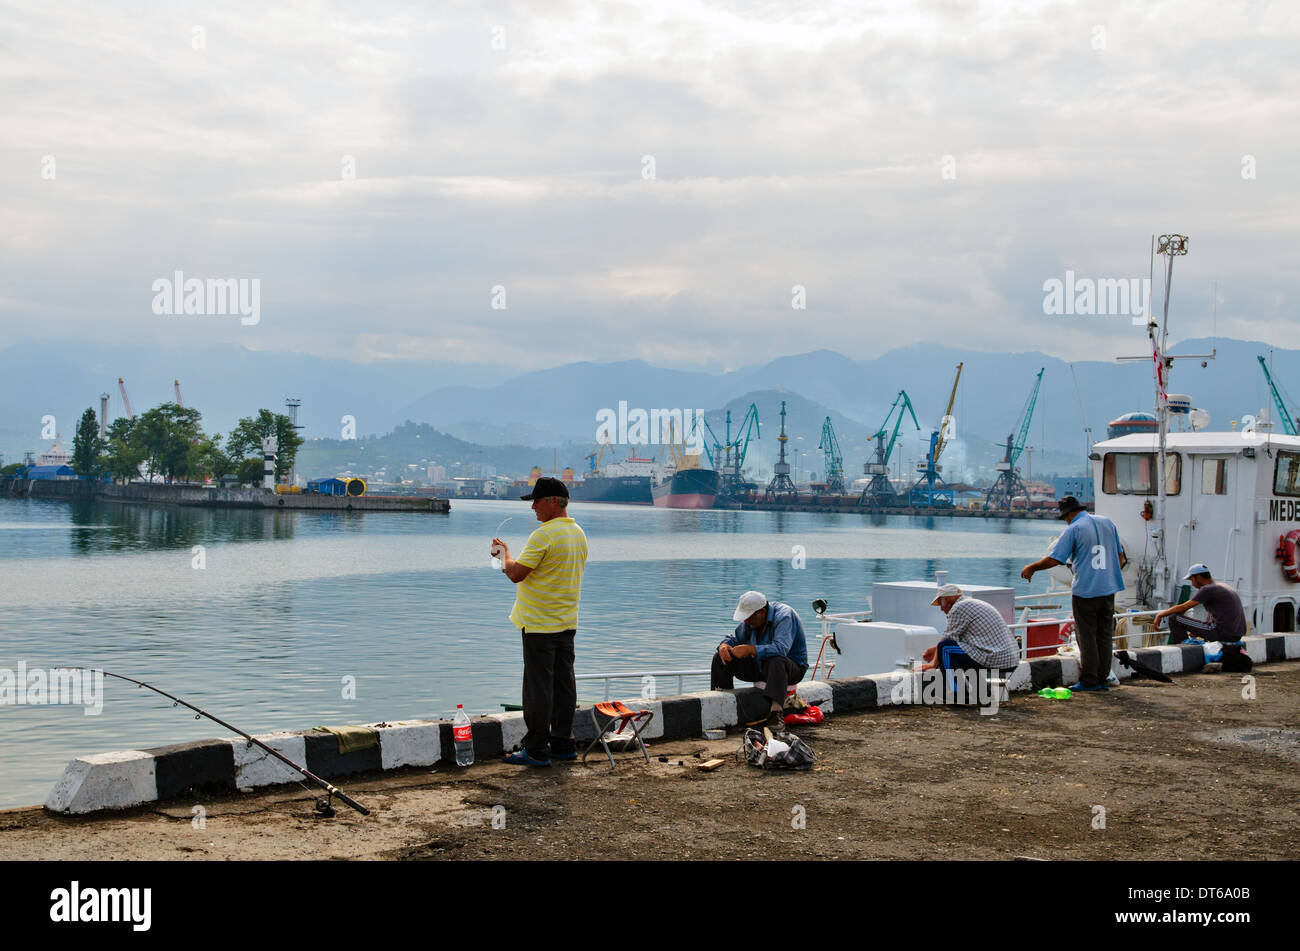 Fishermen in port of Batumi, Georgia - Stock Image